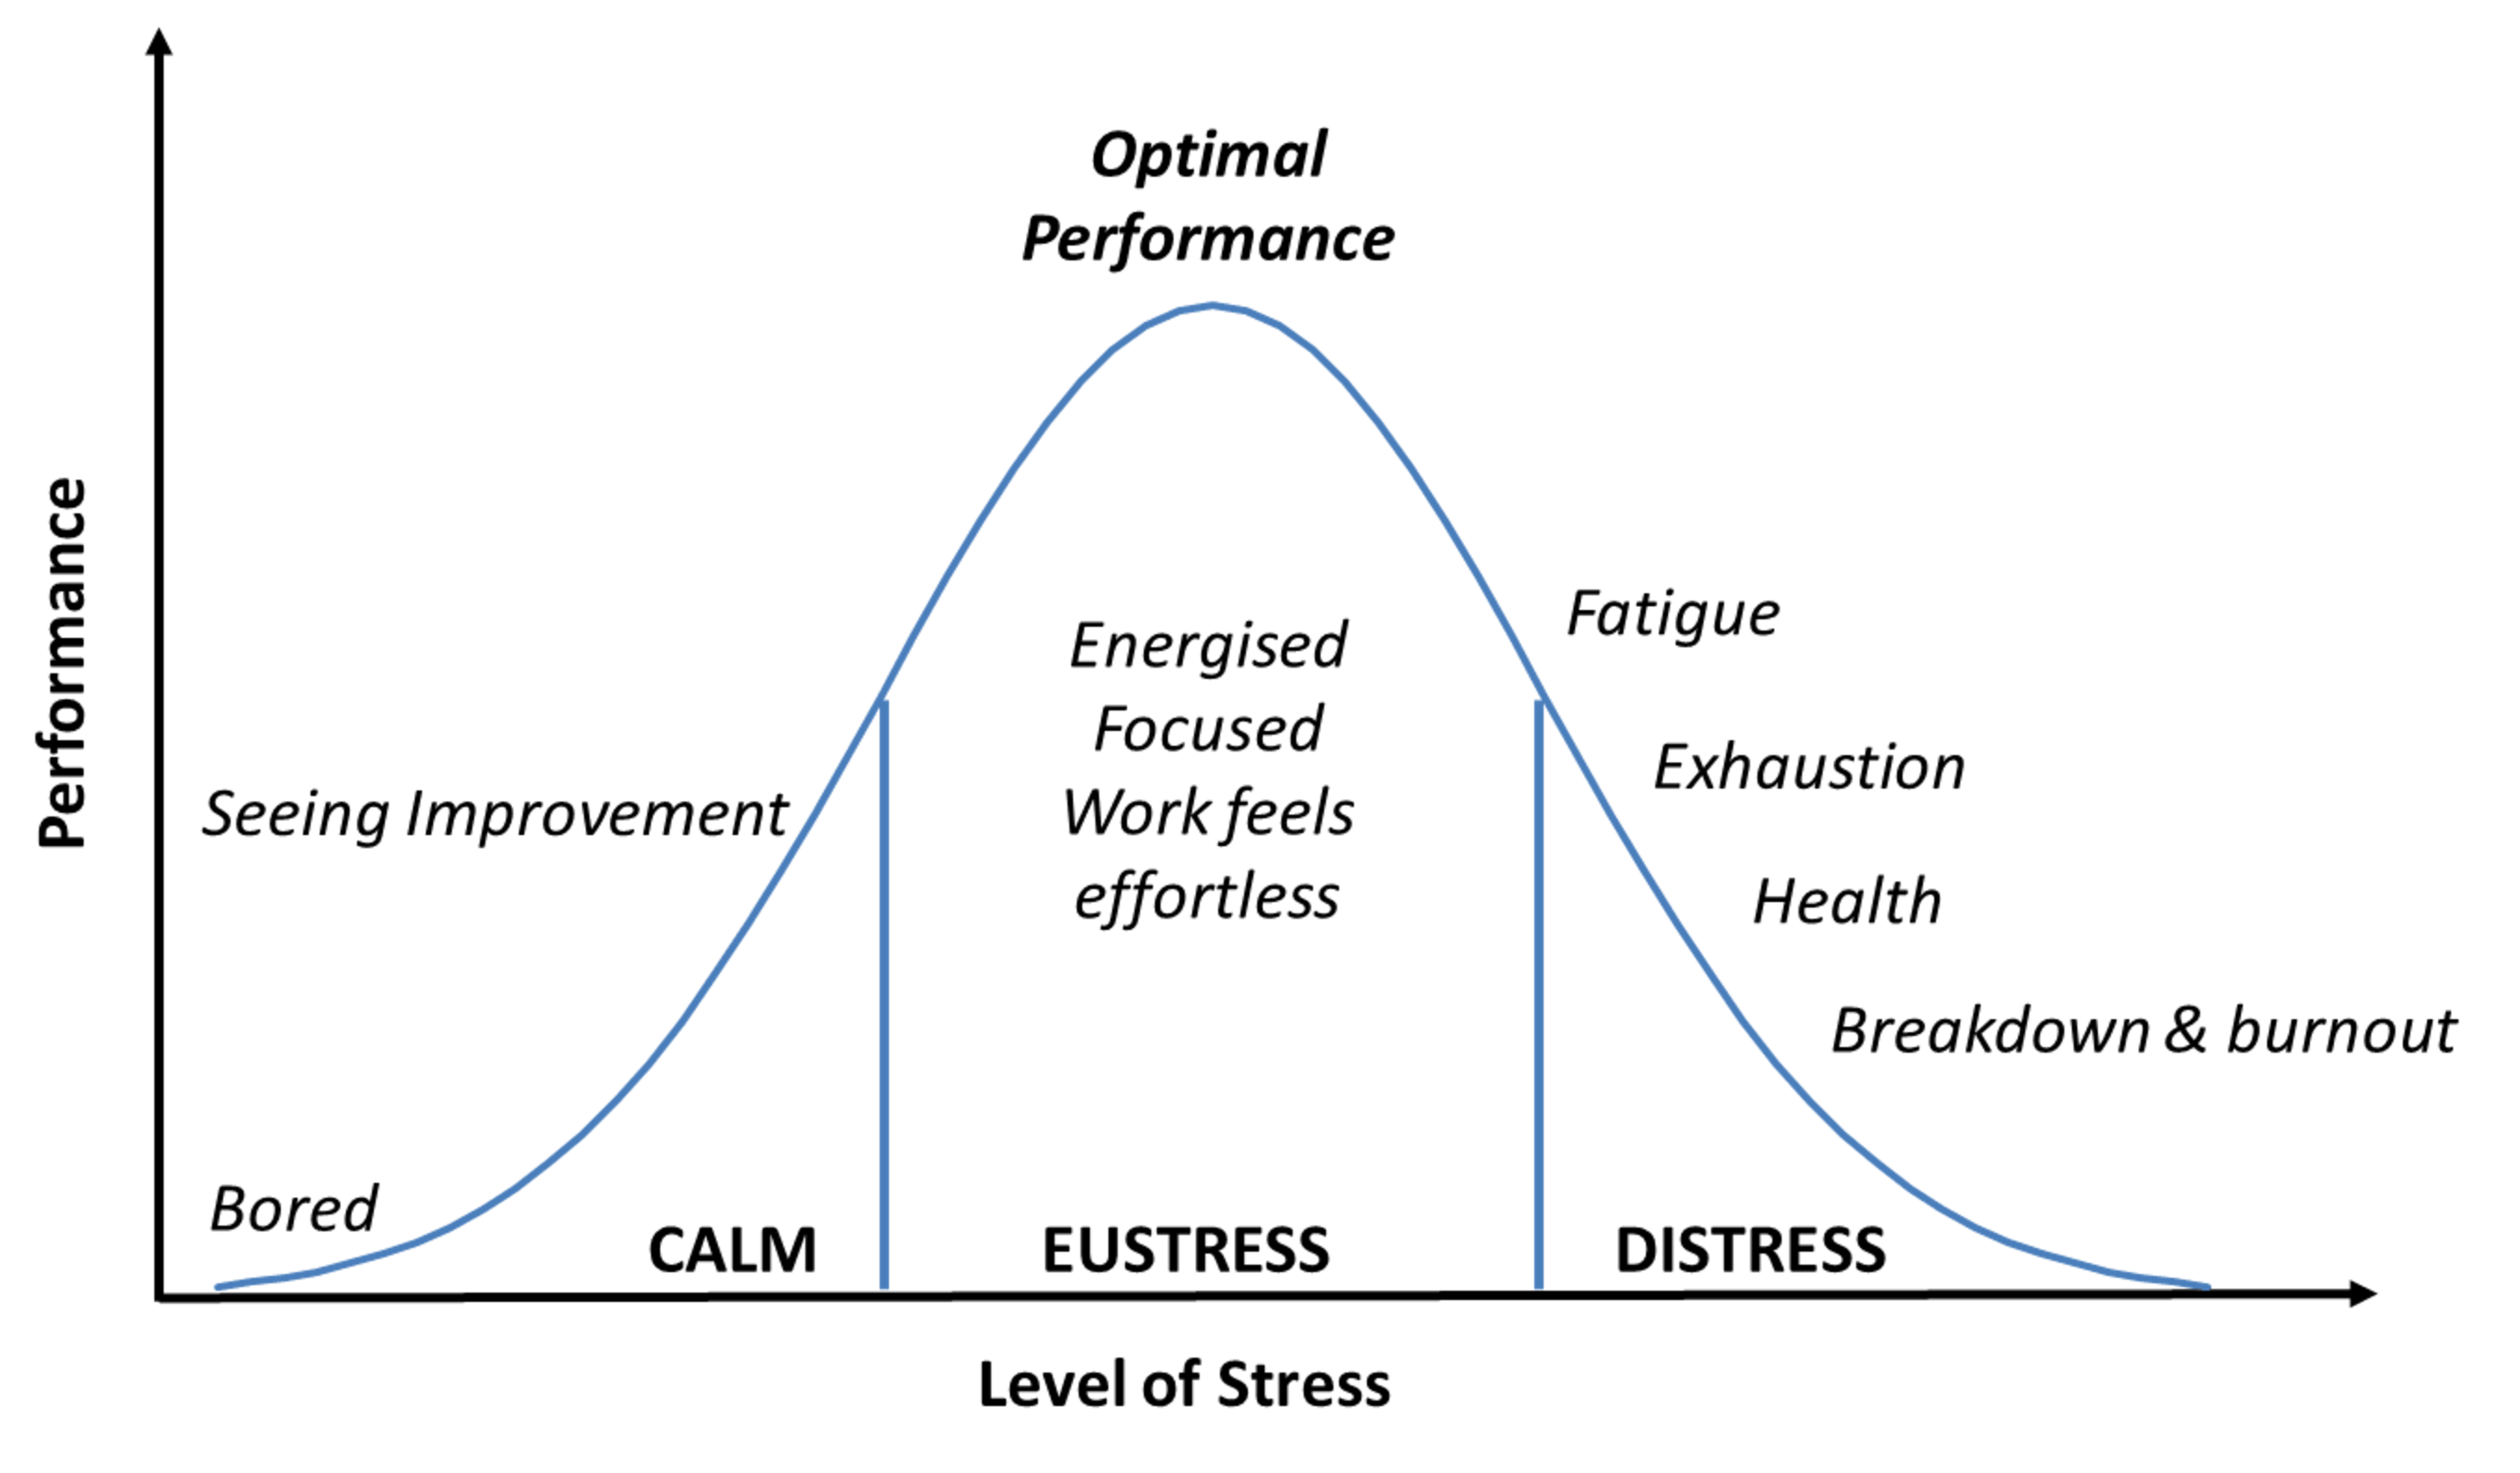 U Shaped Stress Curve